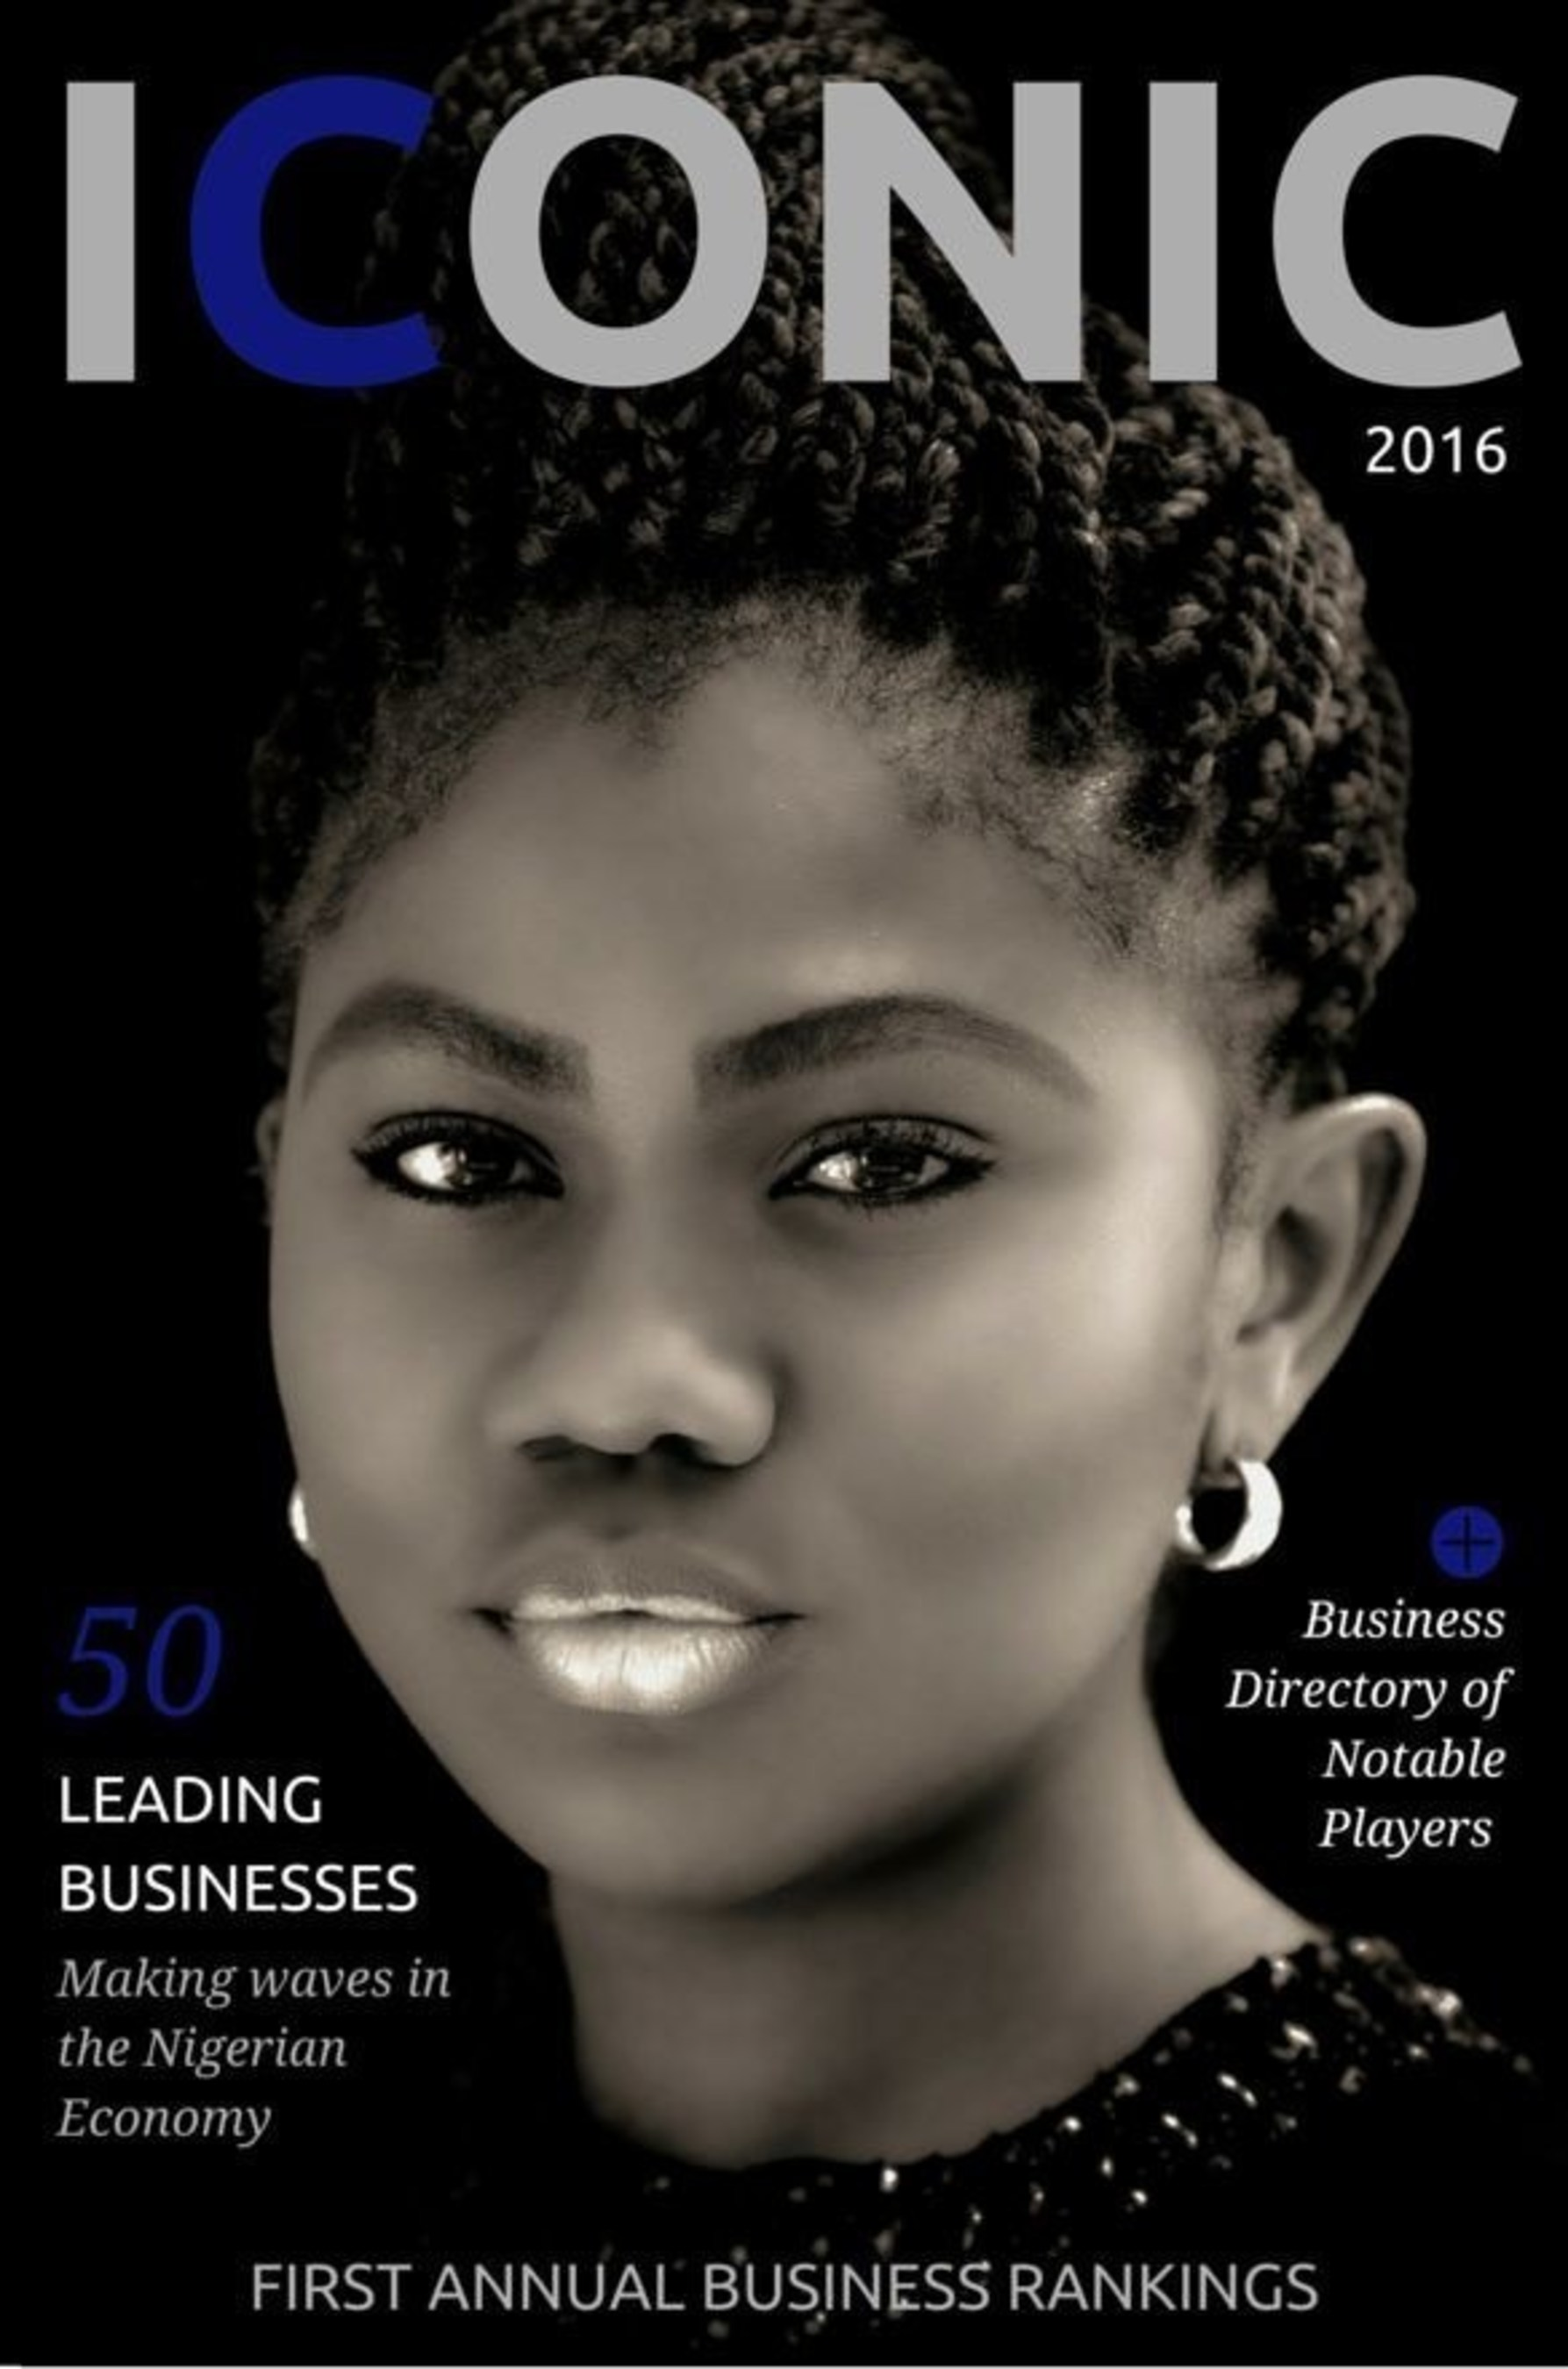 ICONIC 2016 Cover Page that celebrates and recognizes everyday hardworking Nigerian professionals. (PRNewsFoto/Iconic Nigeria)